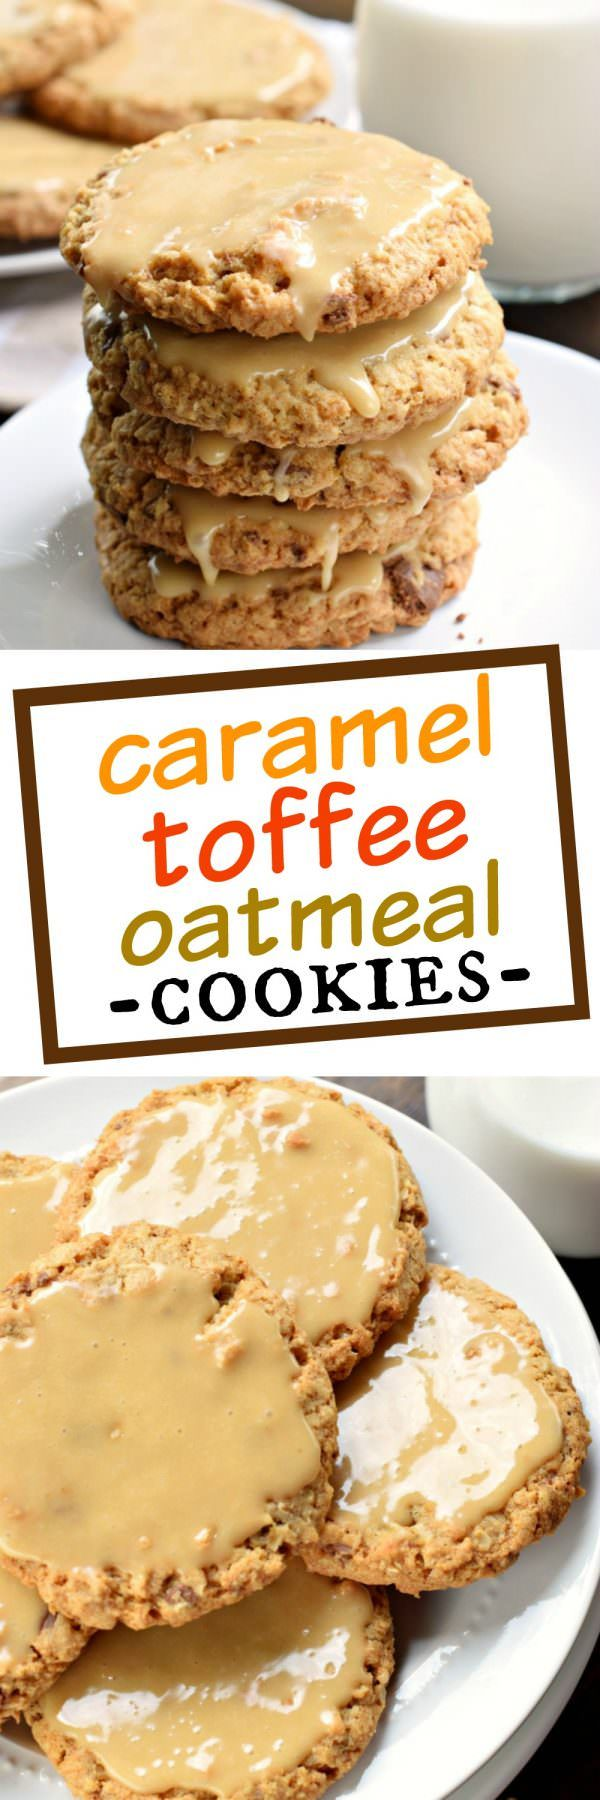 These homestyle Iced Caramel Toffee Oatmeal Cookies are better than anything bought in a store! Bake a batch today and watch them disappear!#recipe